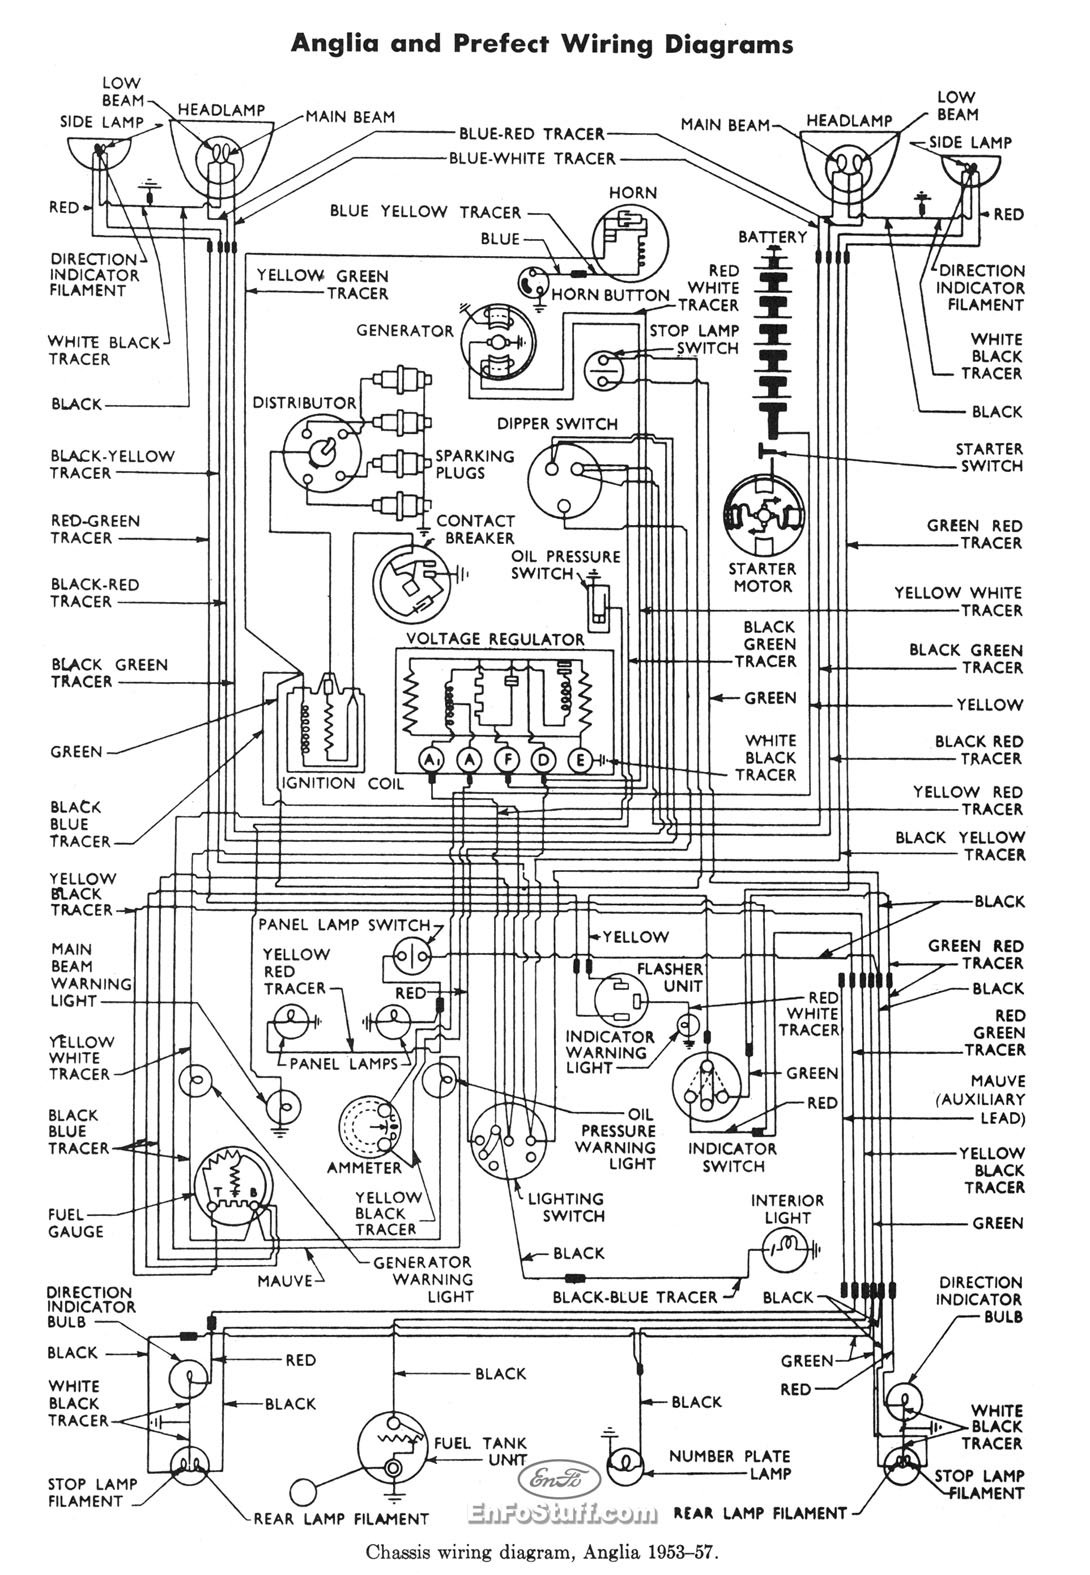 Ford 2000 Wiring Diagram Schematics 2006 F150 Diagrams For Anglia 1953 57 Truck